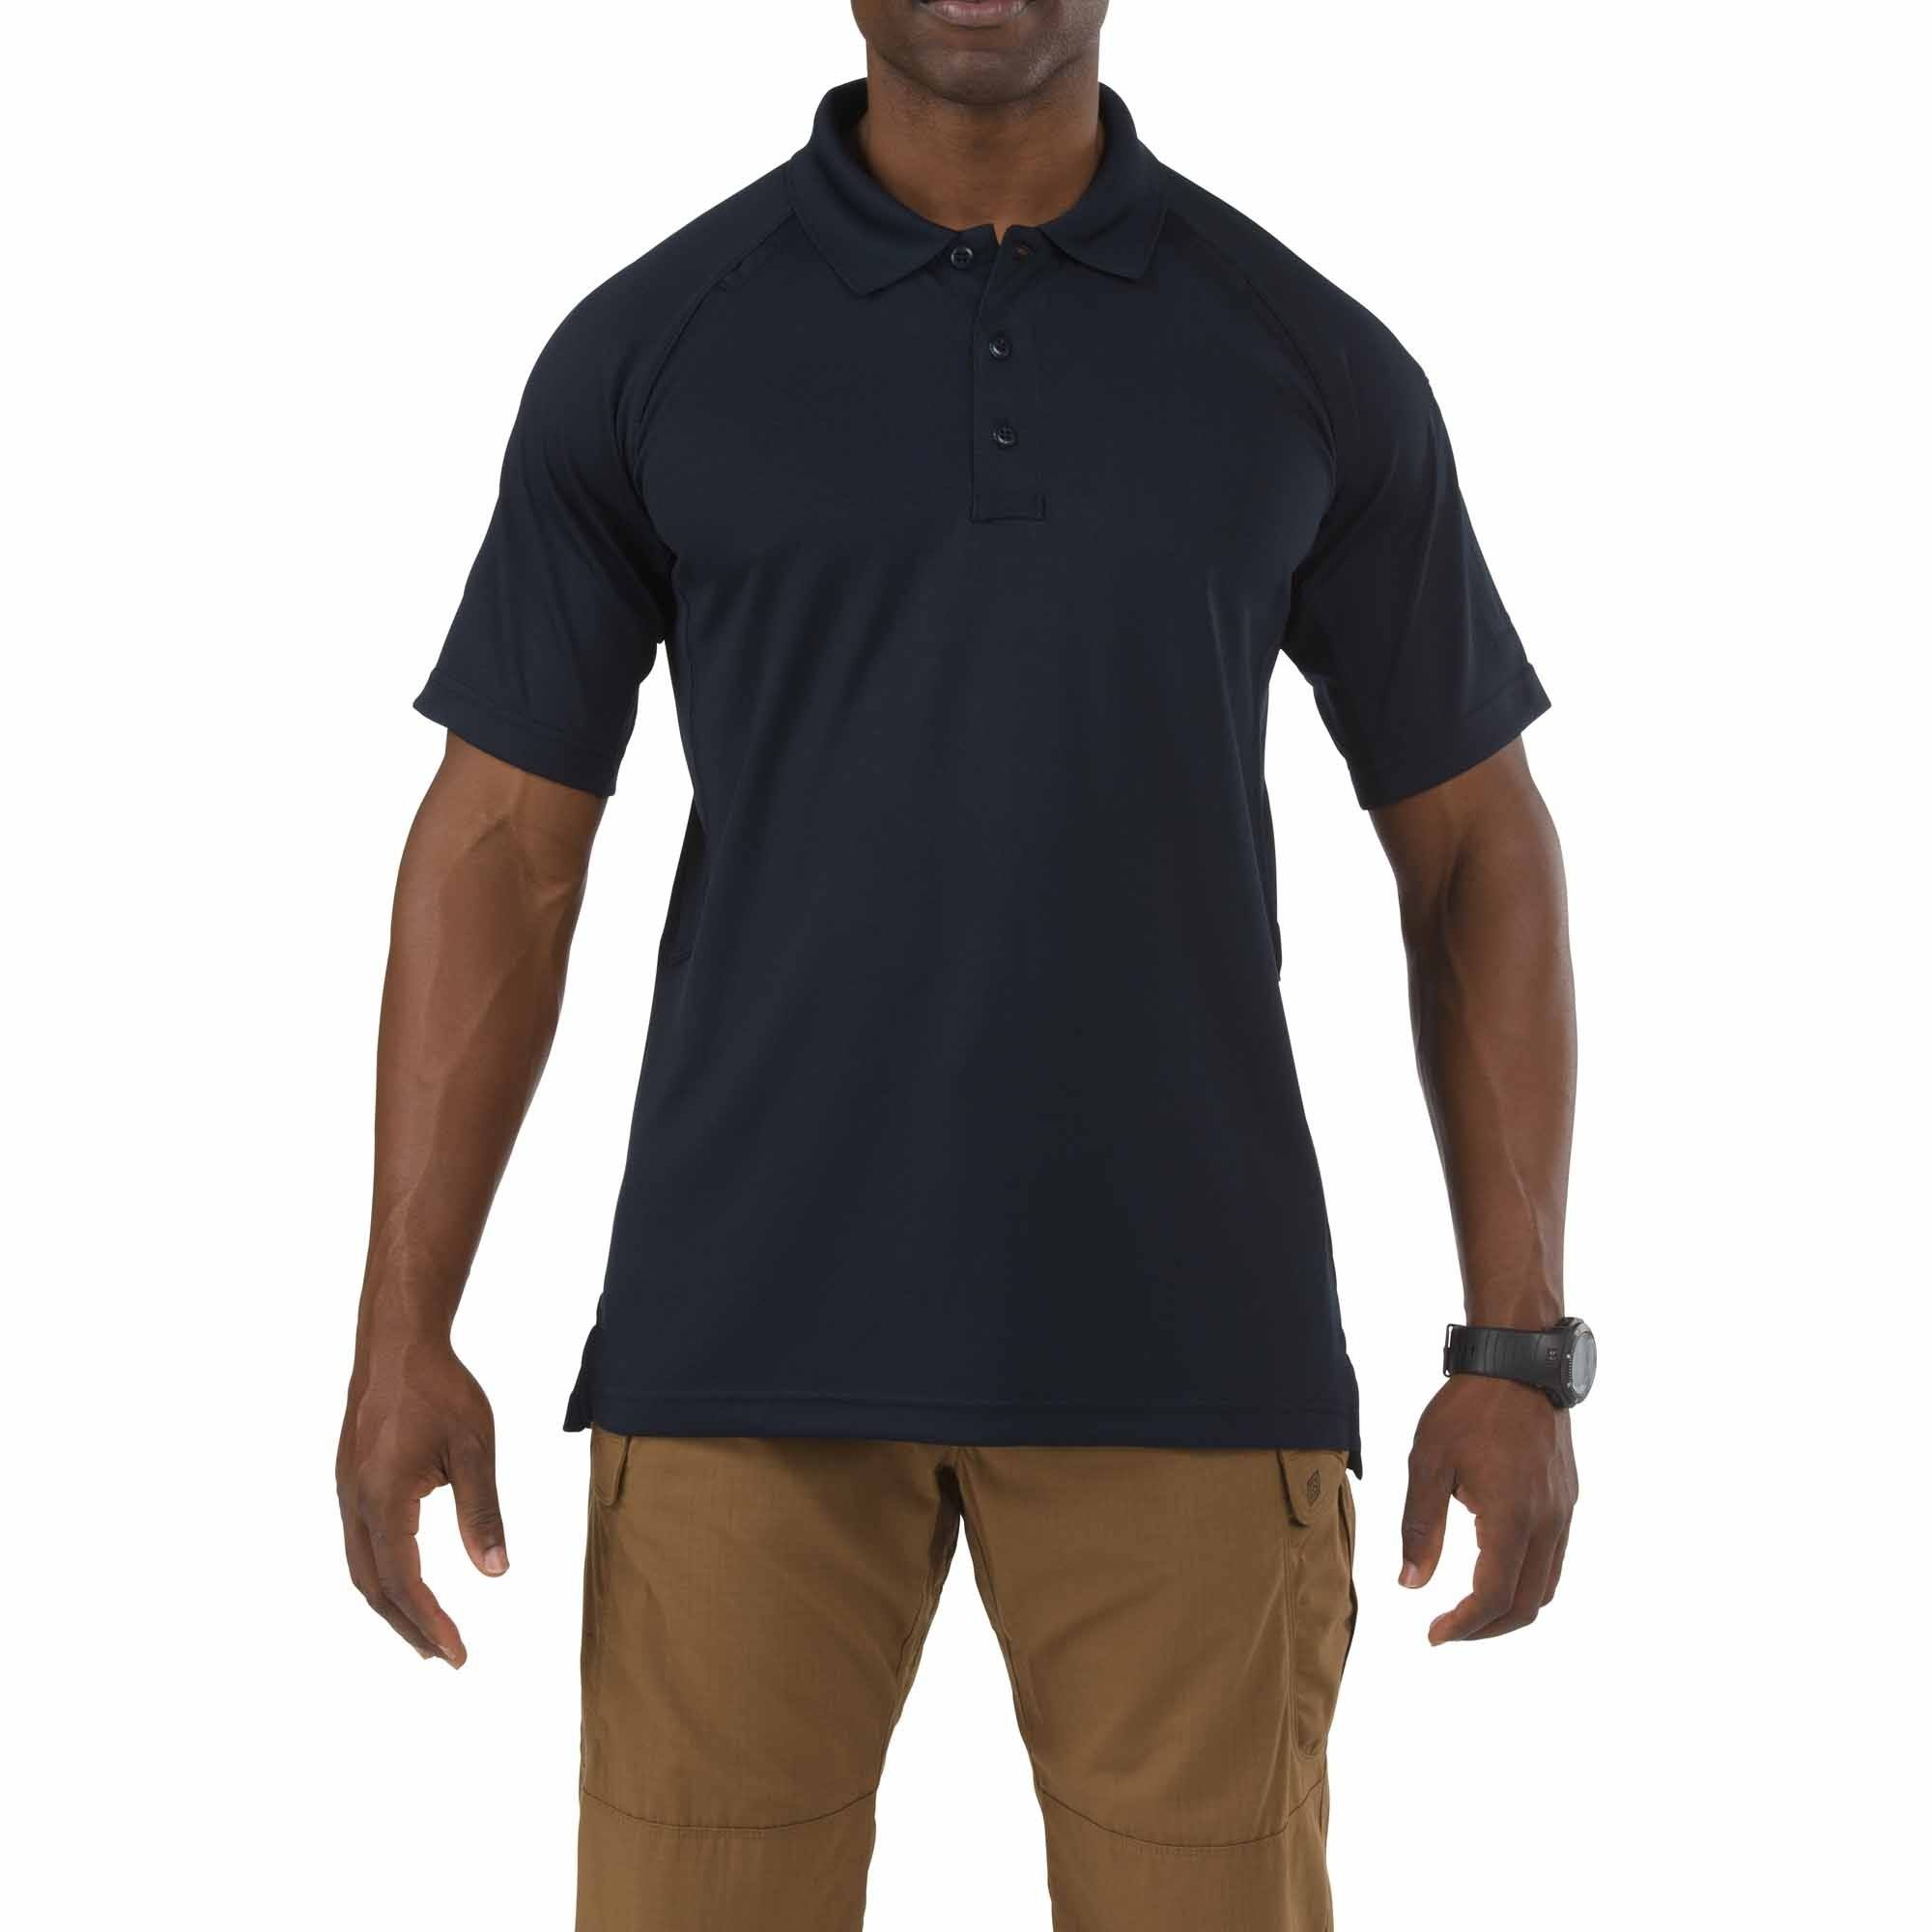 5.11 Tactical Performance Polo Short Sleeve, Dark Navy XL